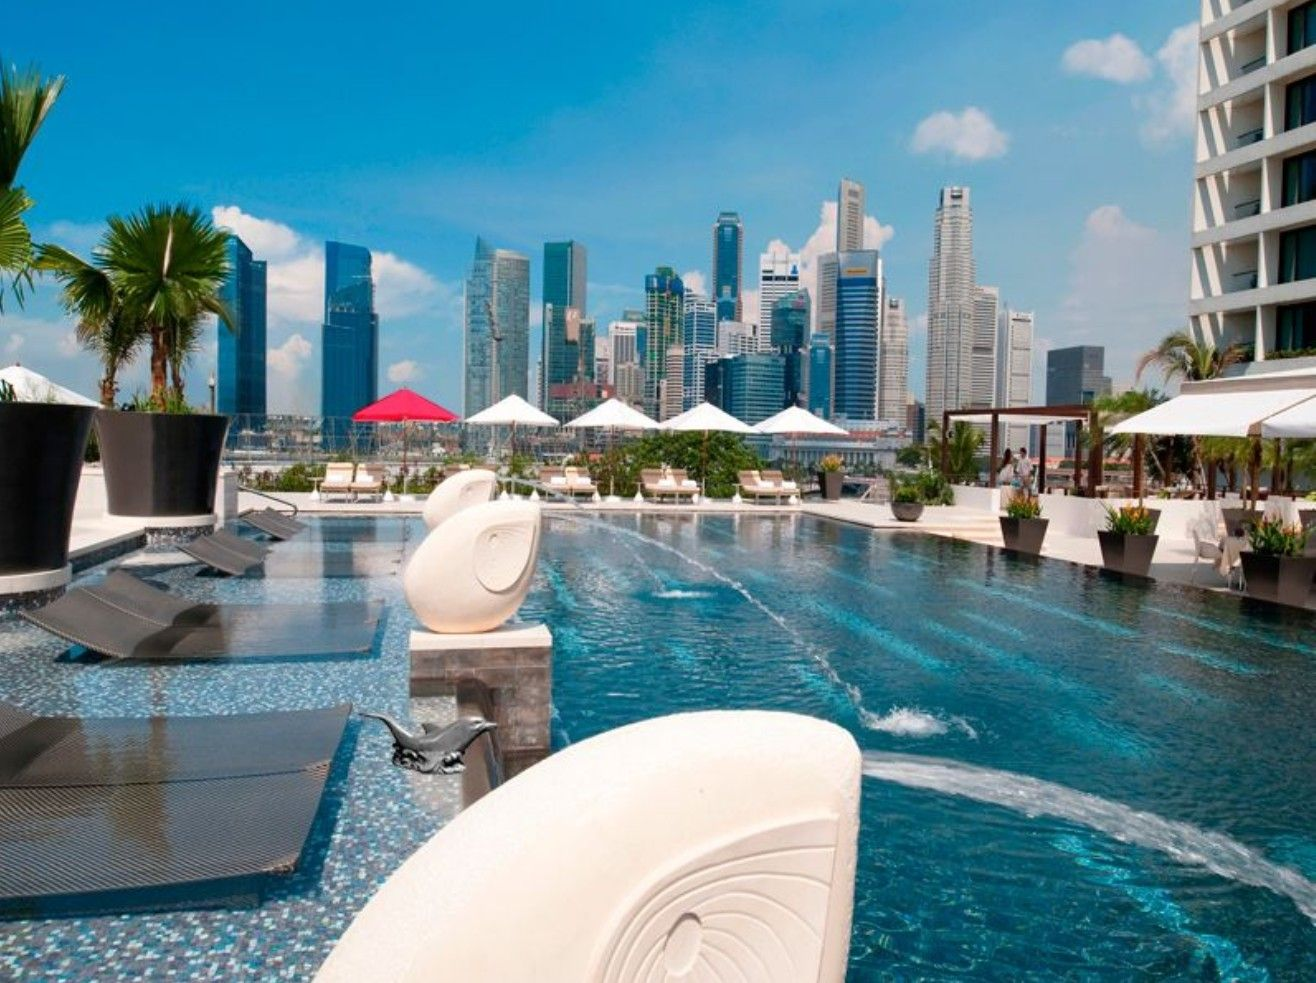 Pin by Melissa James on Travel Mandarin oriental, Hotel